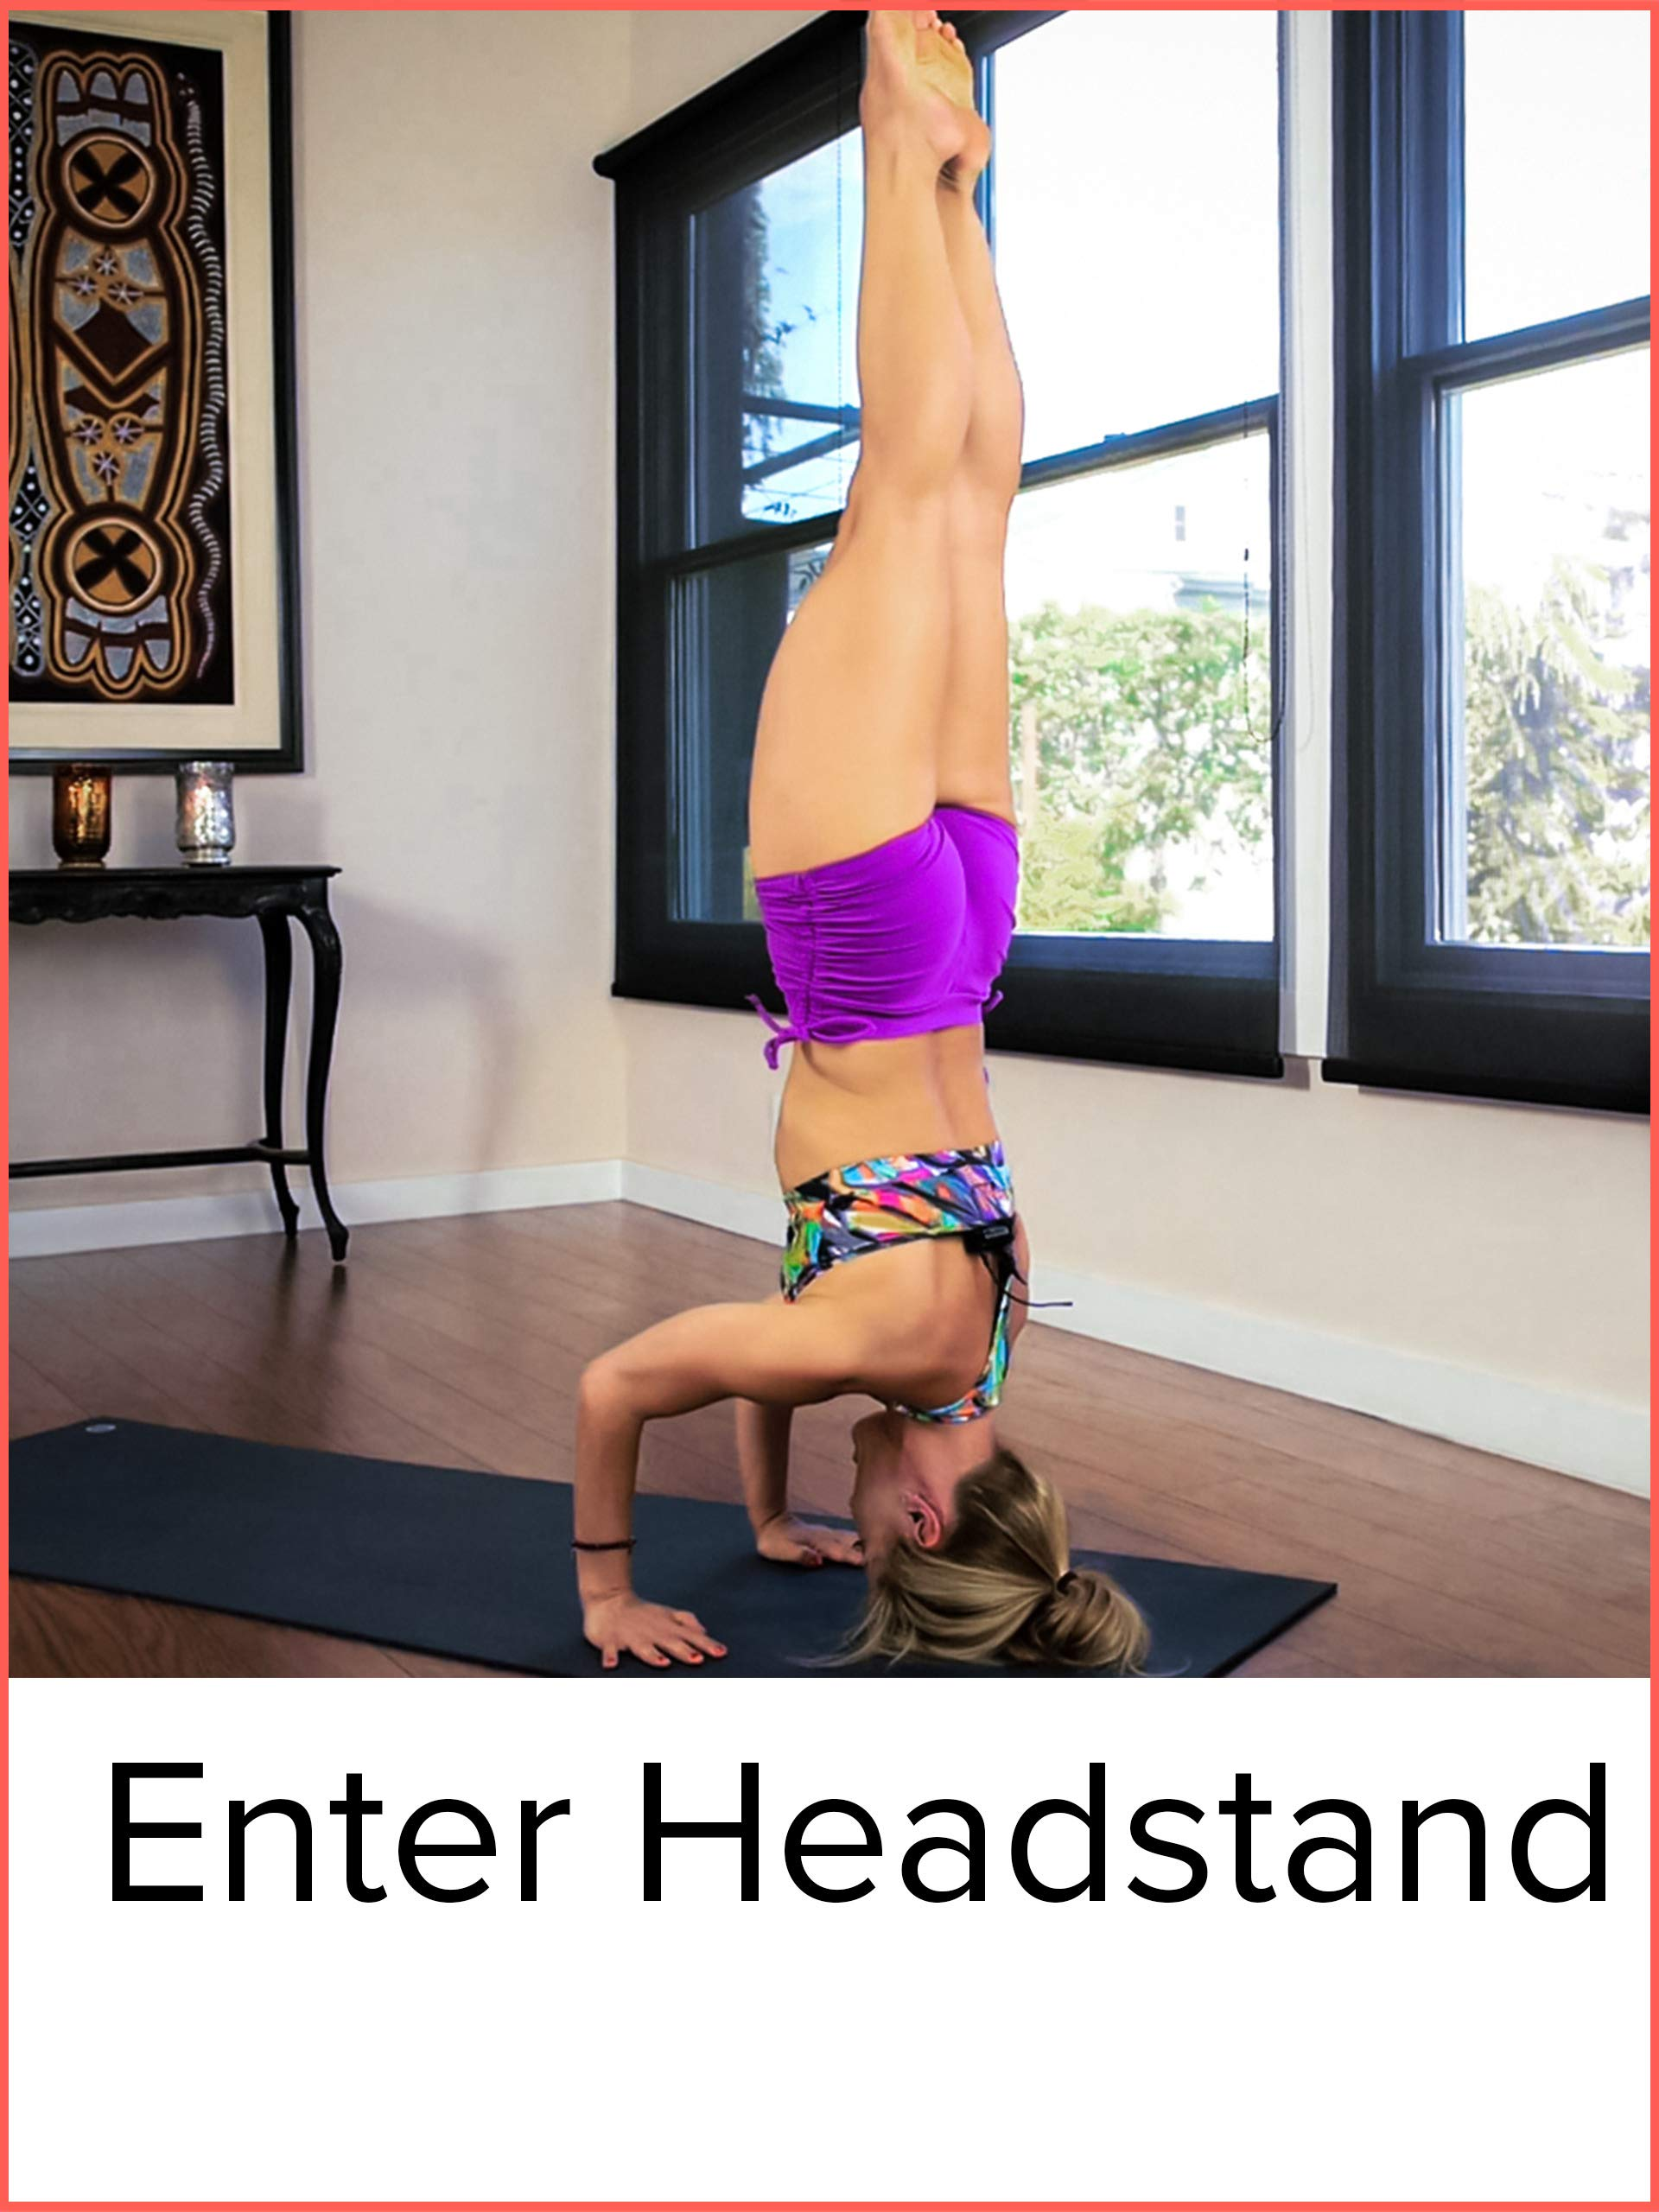 Watch Headstand Tutorial How to Enter Headstand   Prime Video